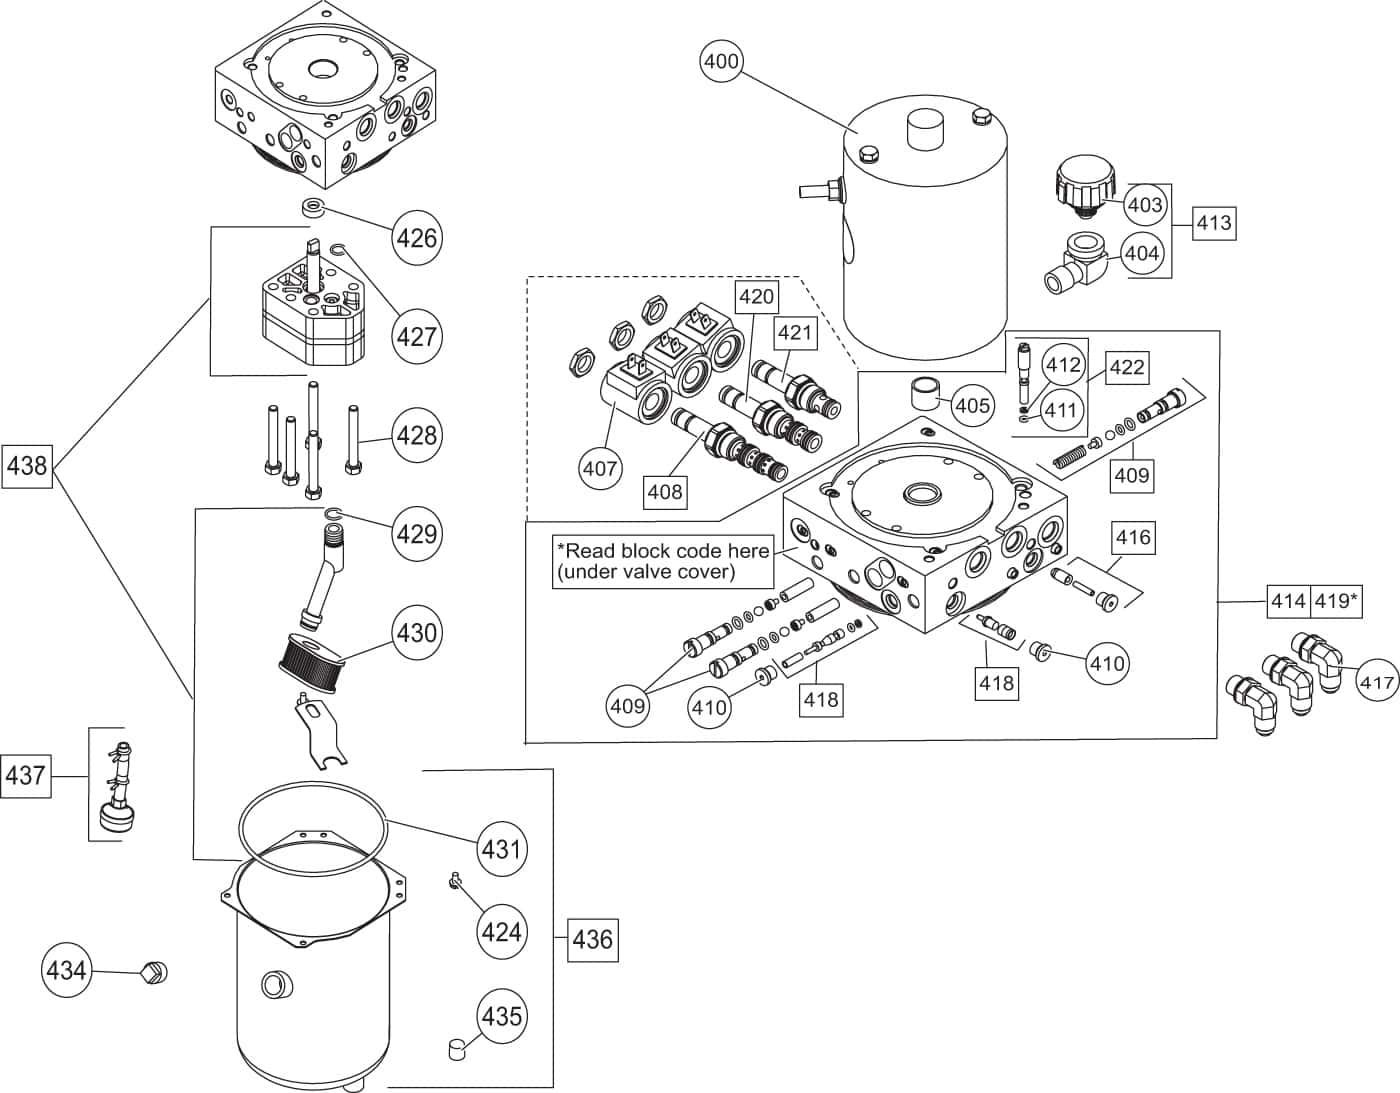 salt dogg controller wiring diagram